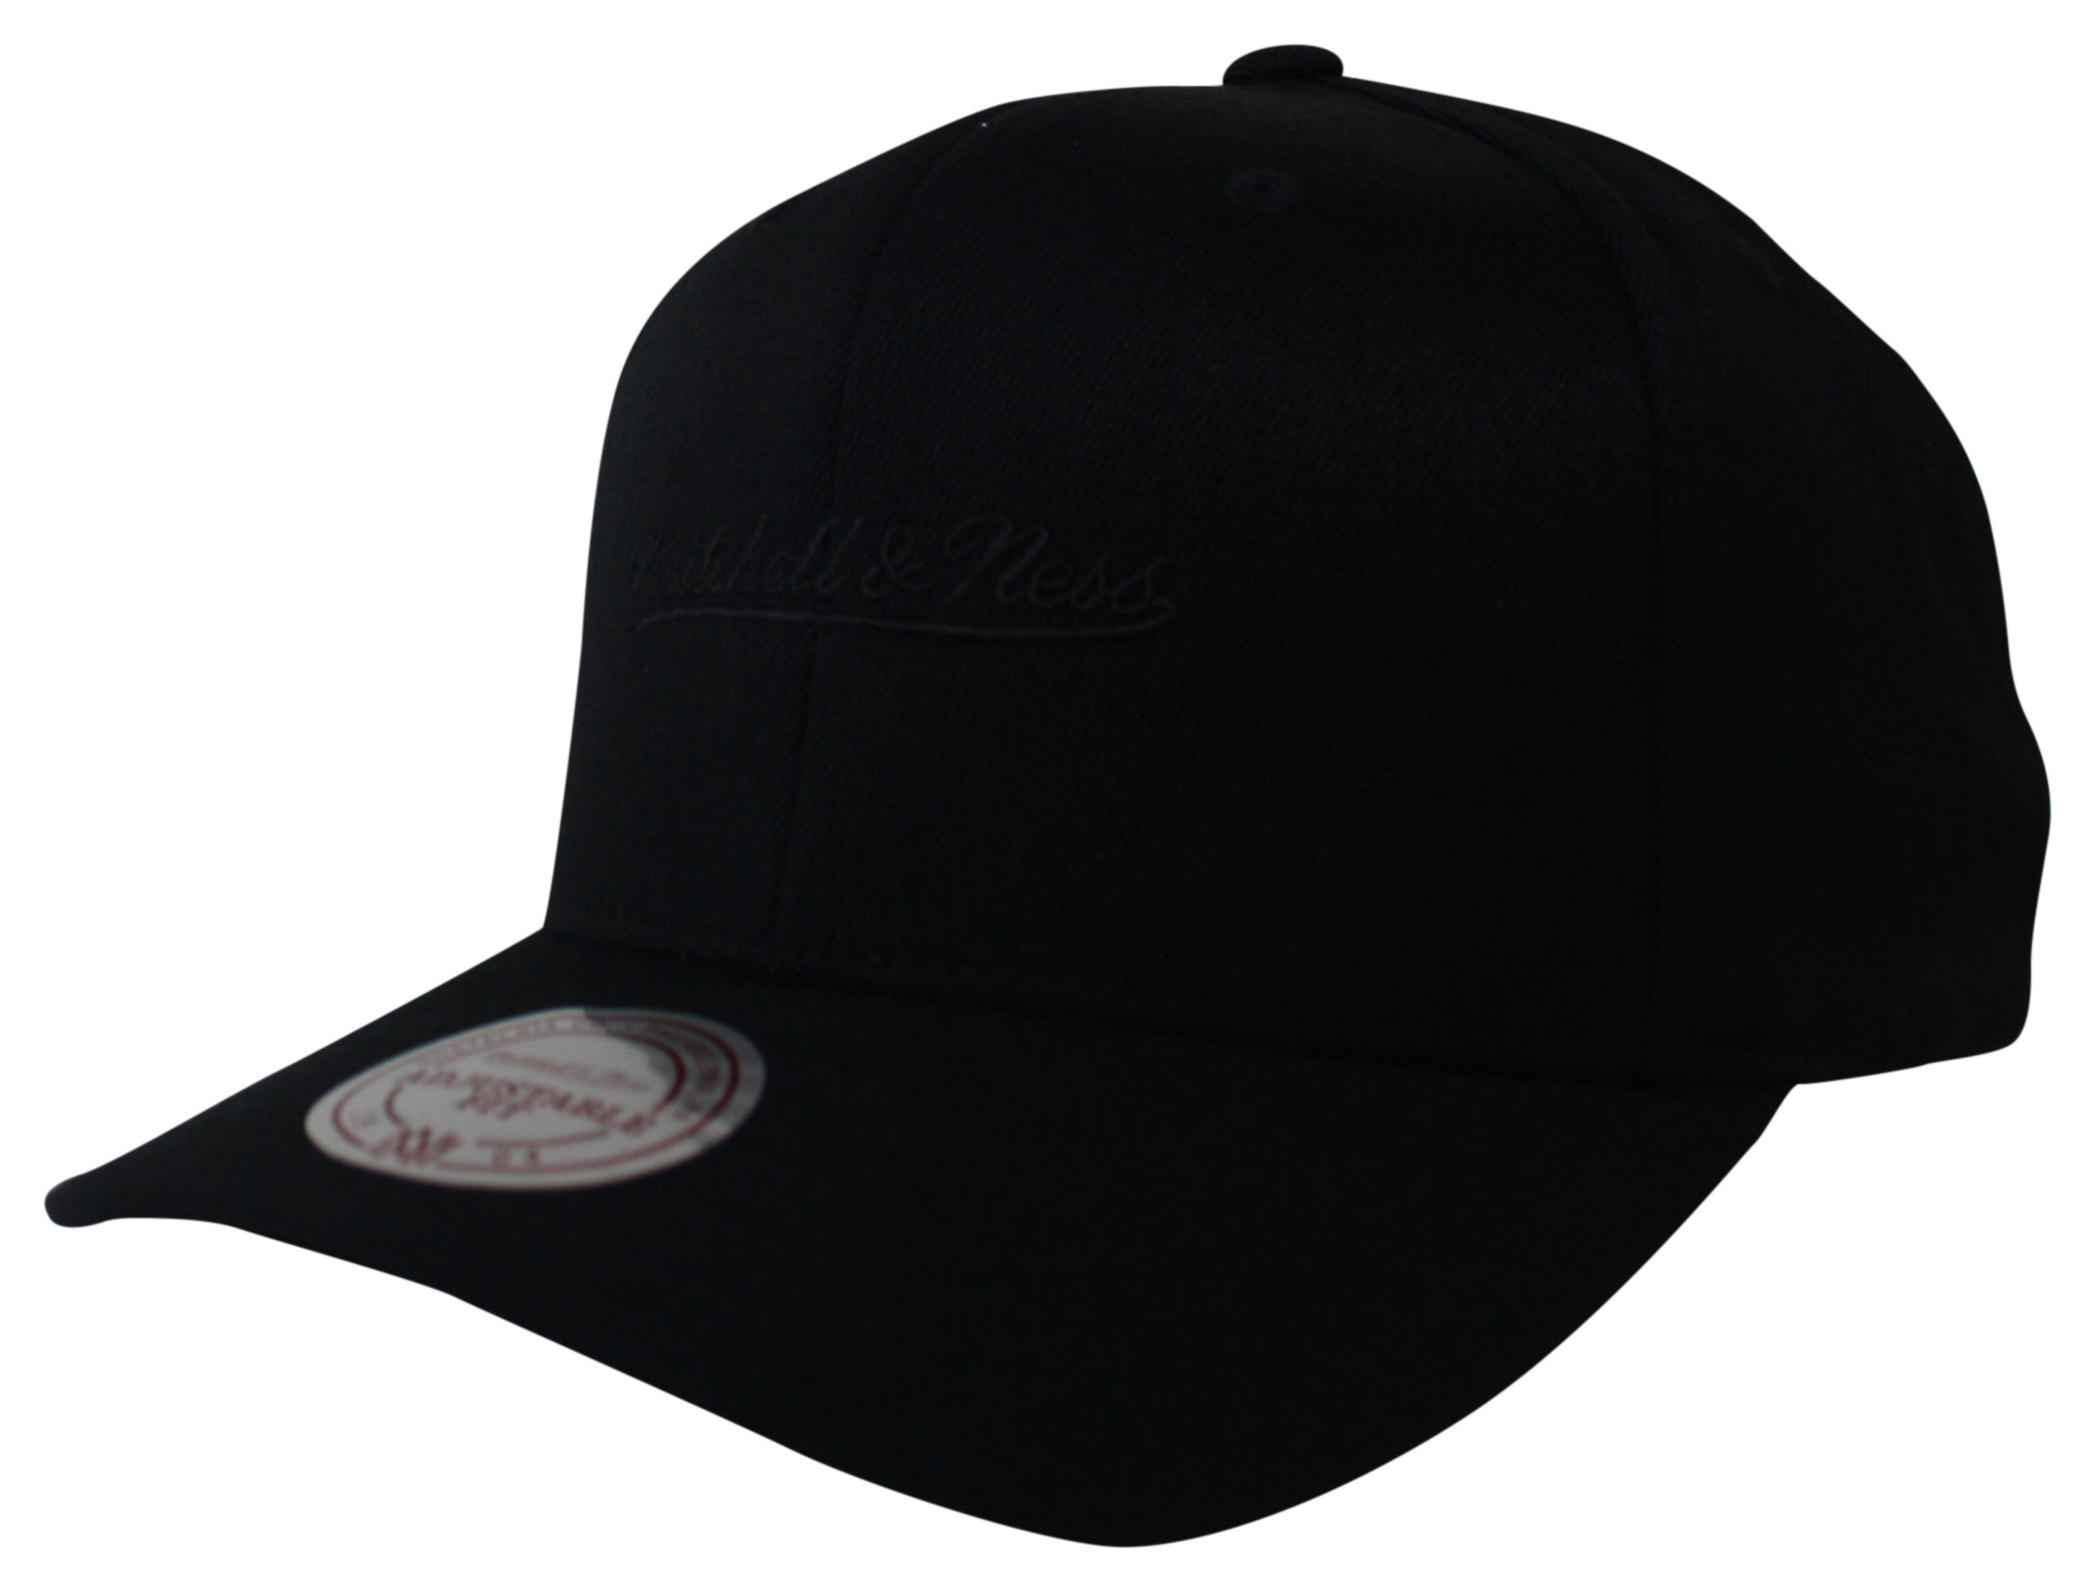 mitchell ness mitchell and ness black 110 snapback. Black Bedroom Furniture Sets. Home Design Ideas